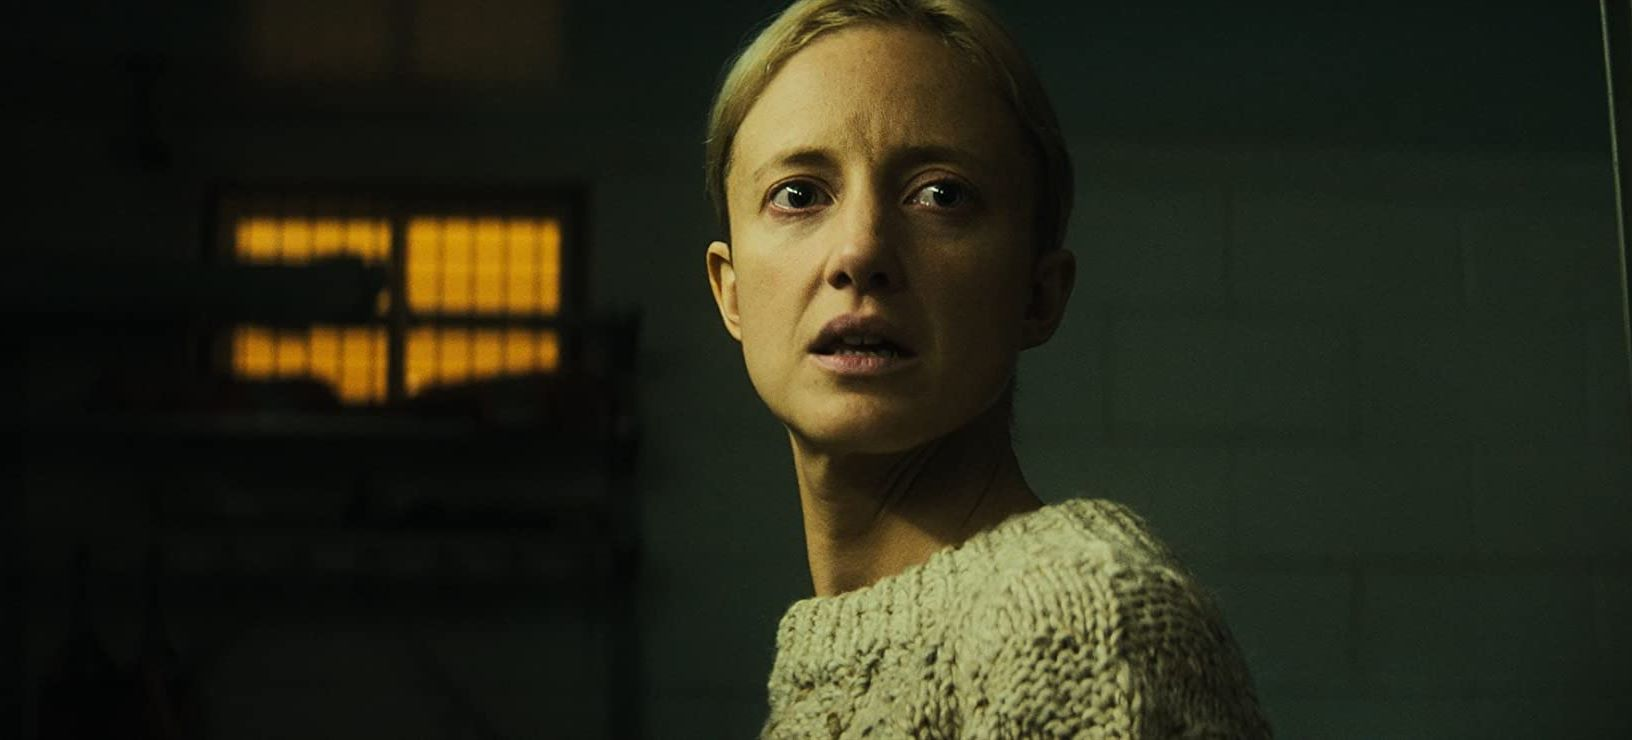 Detective Andrea Riseborough in The Grudge (2020)